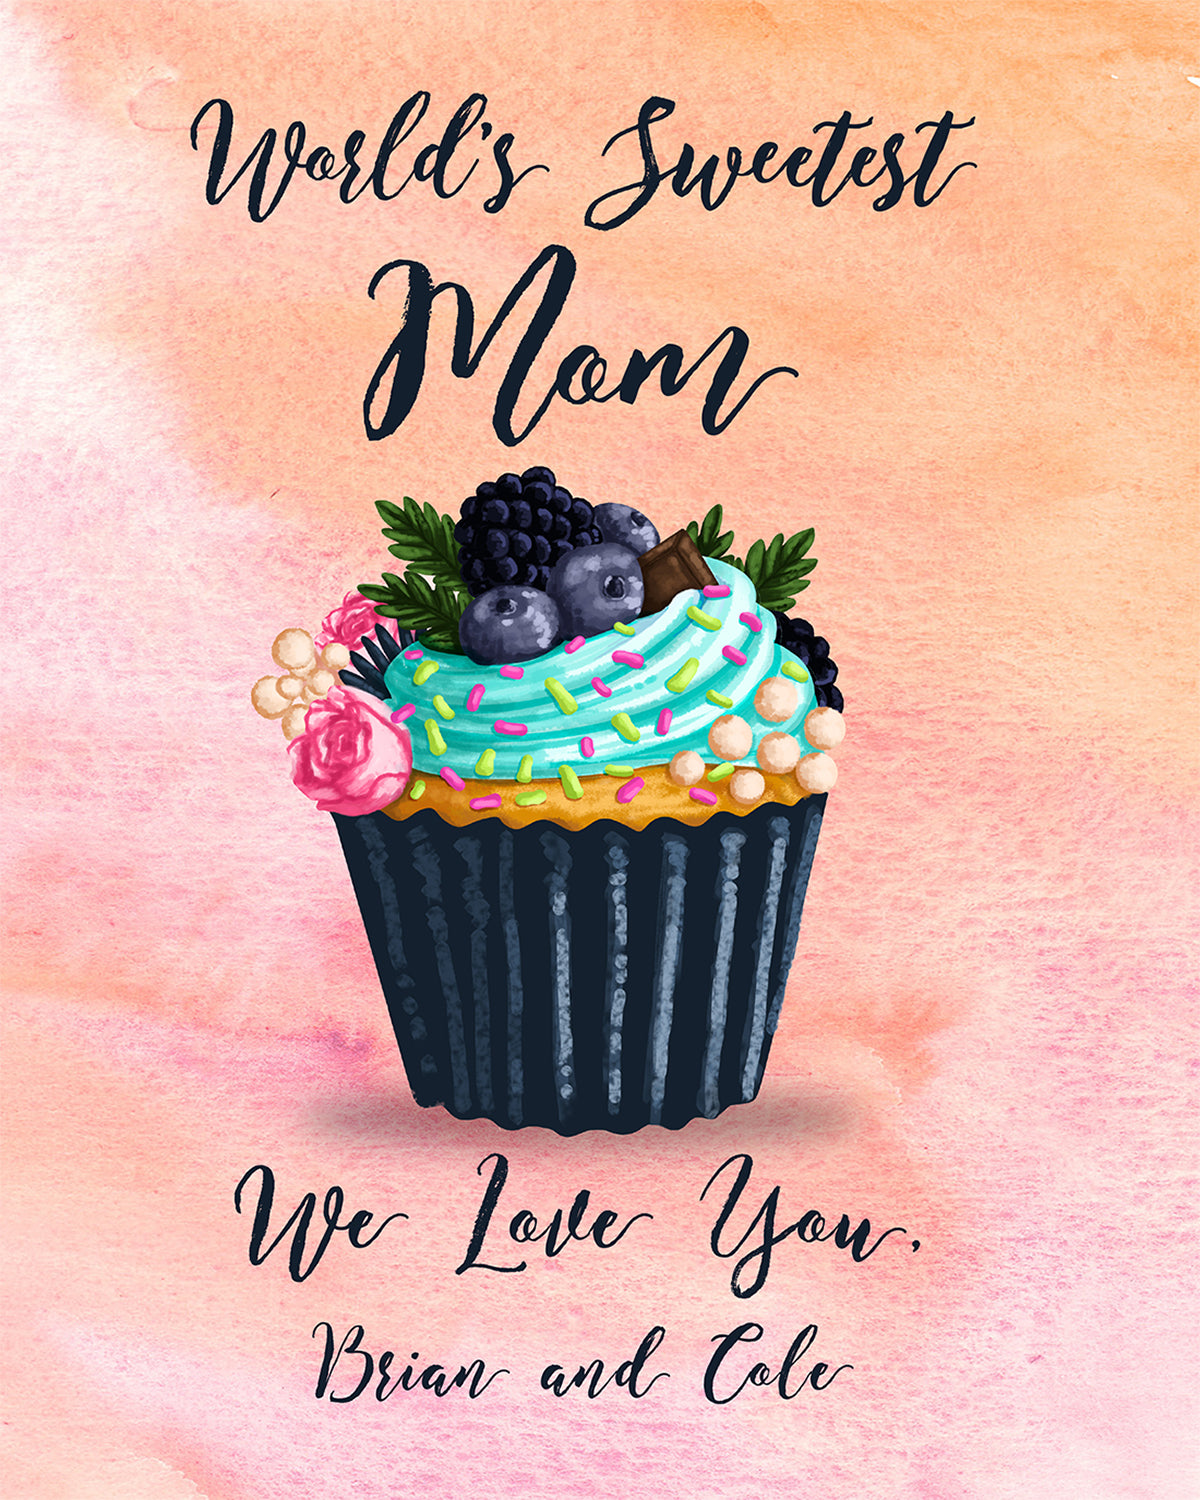 World's Sweetest Mom - We Love You, (Your Name/s) - Customizable Wall Decor Art - Print, Poster & Canvas Sizes - Gift for Mom From Children